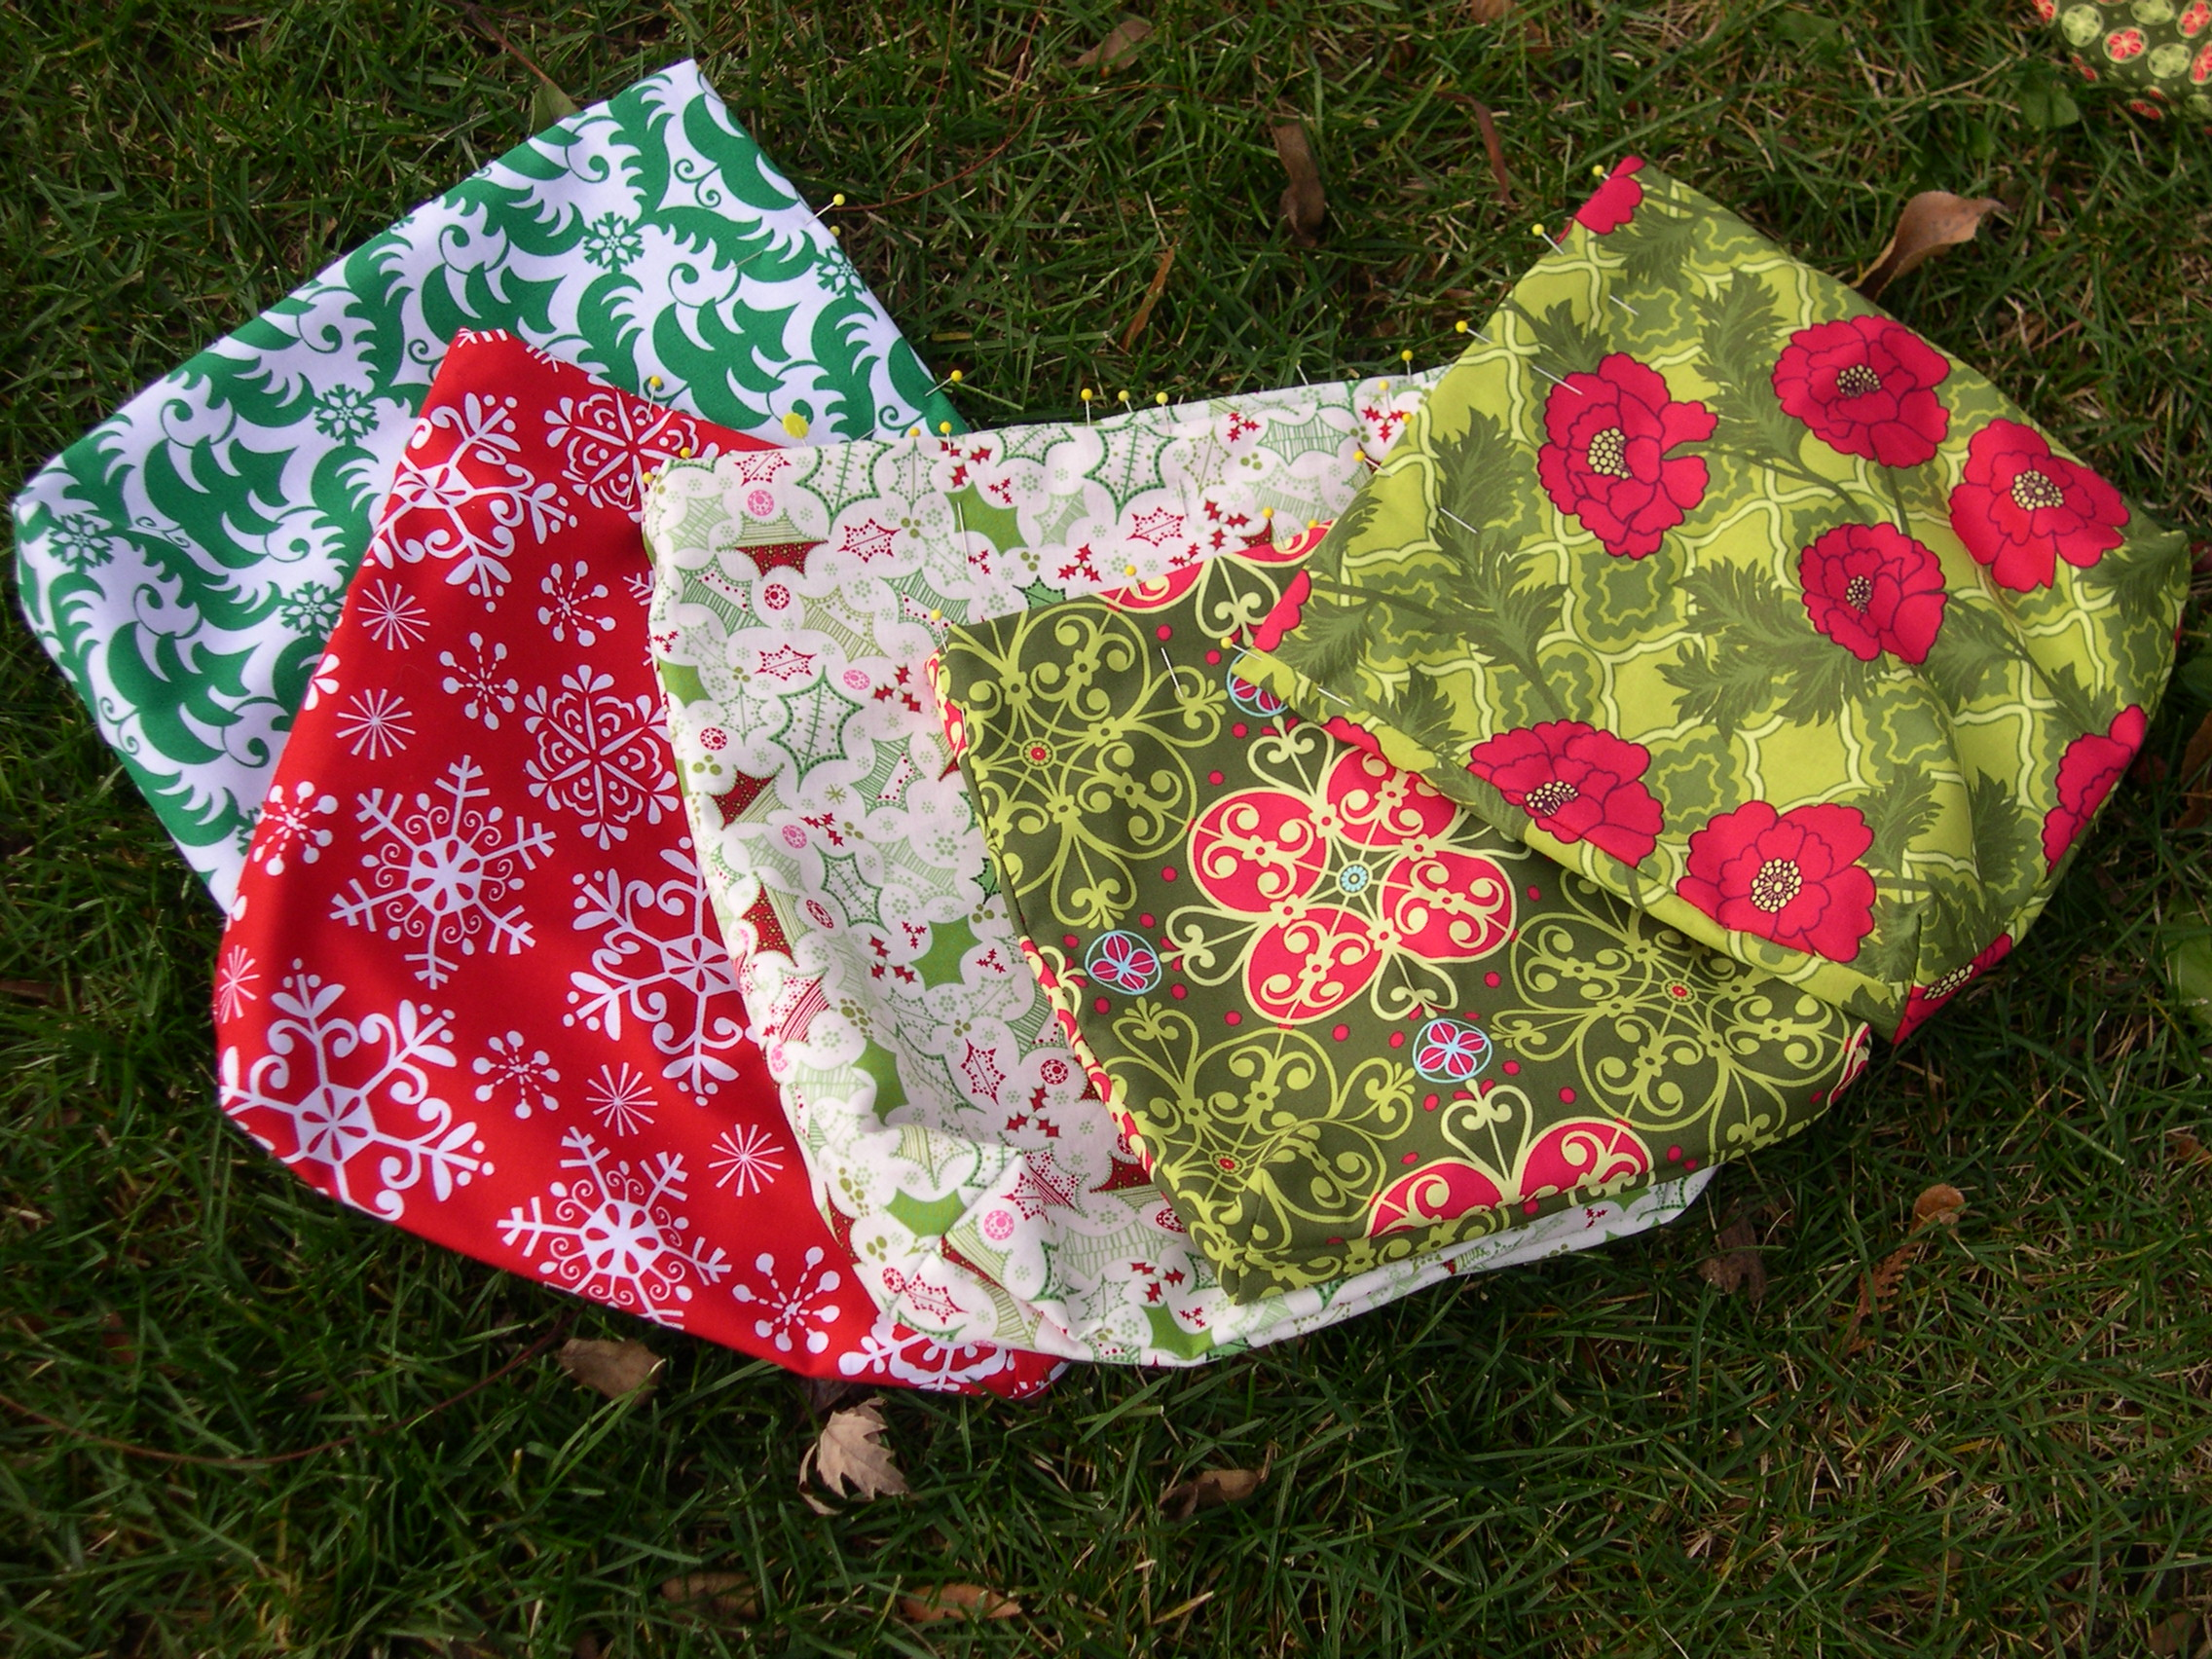 christmas drawstring bags-in progress